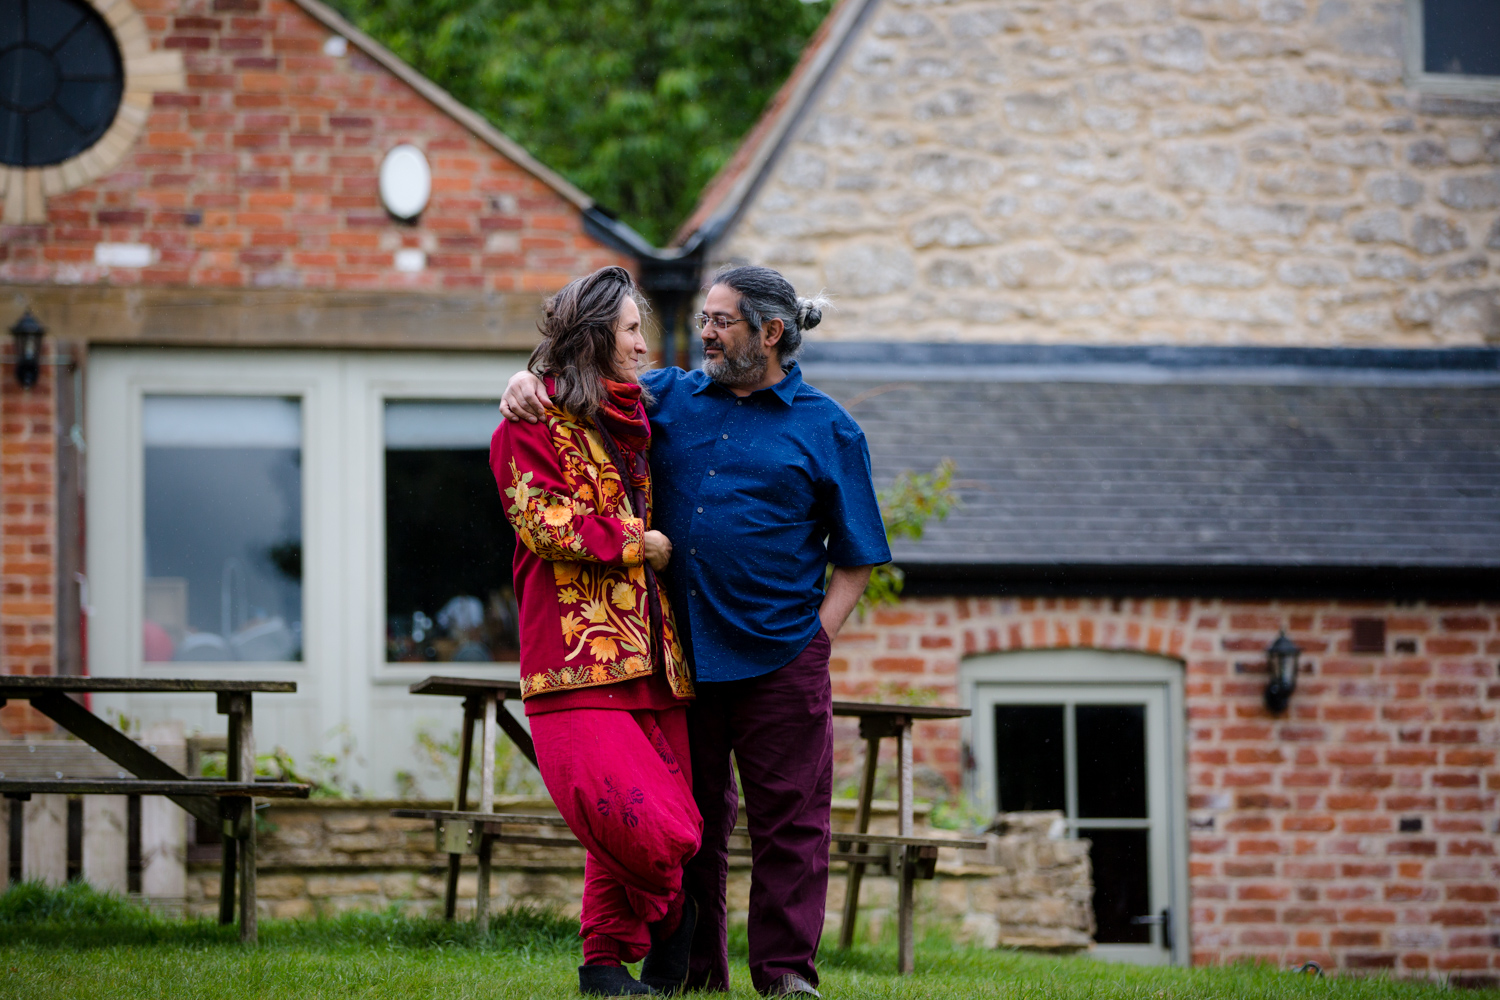 Uma and Nirlipta in Stroud by Leticia Va